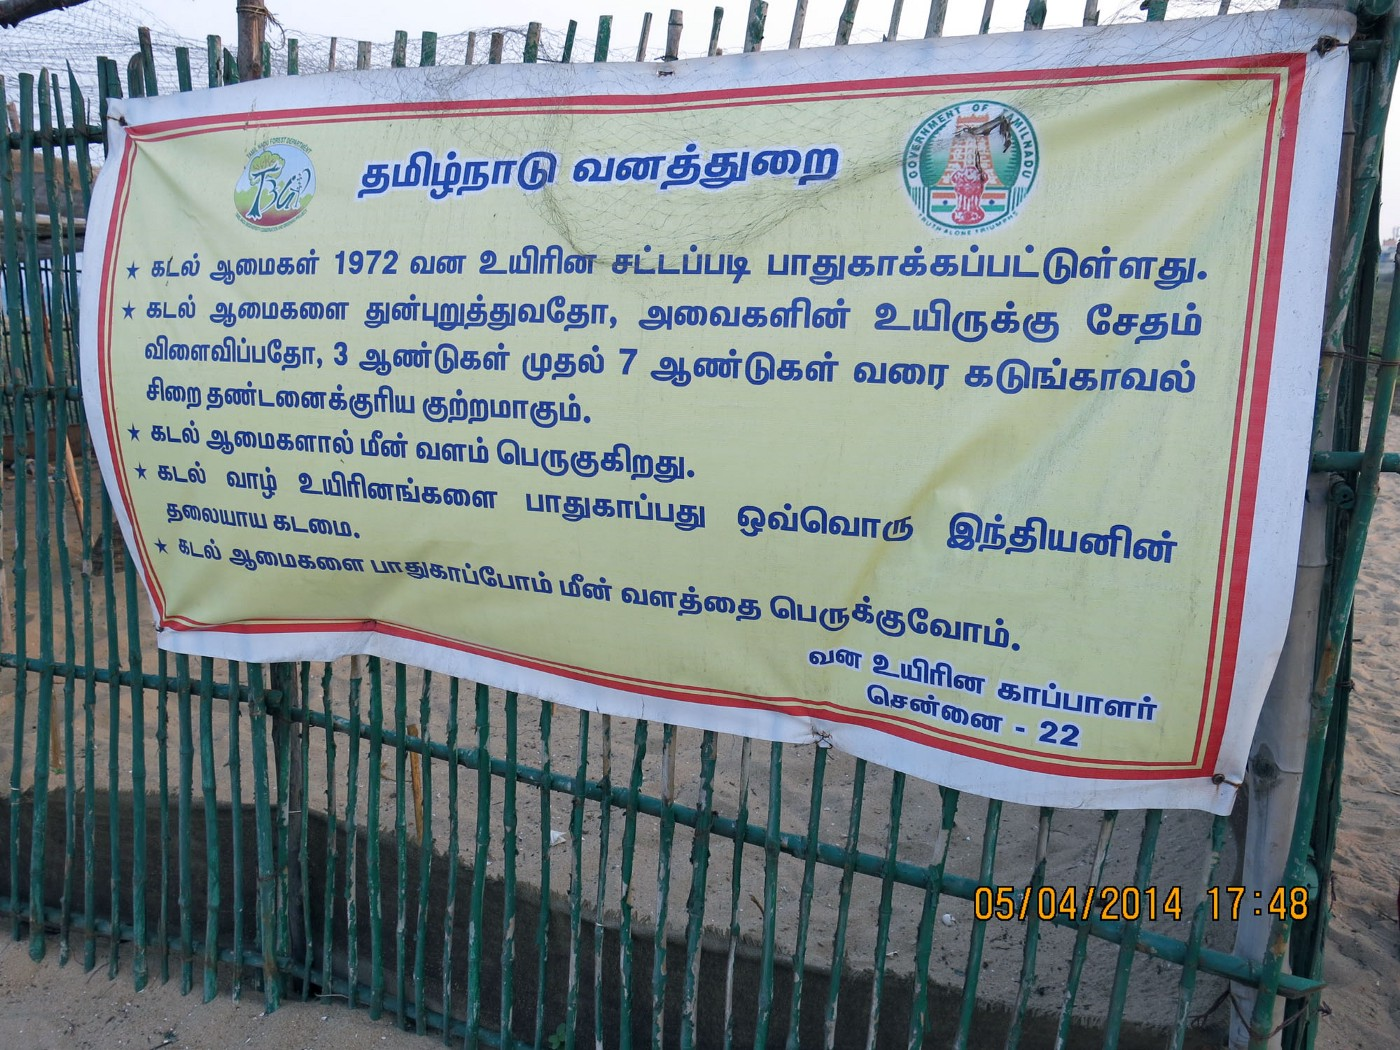 Legal warning issued by Tamil Nadu Forest Department